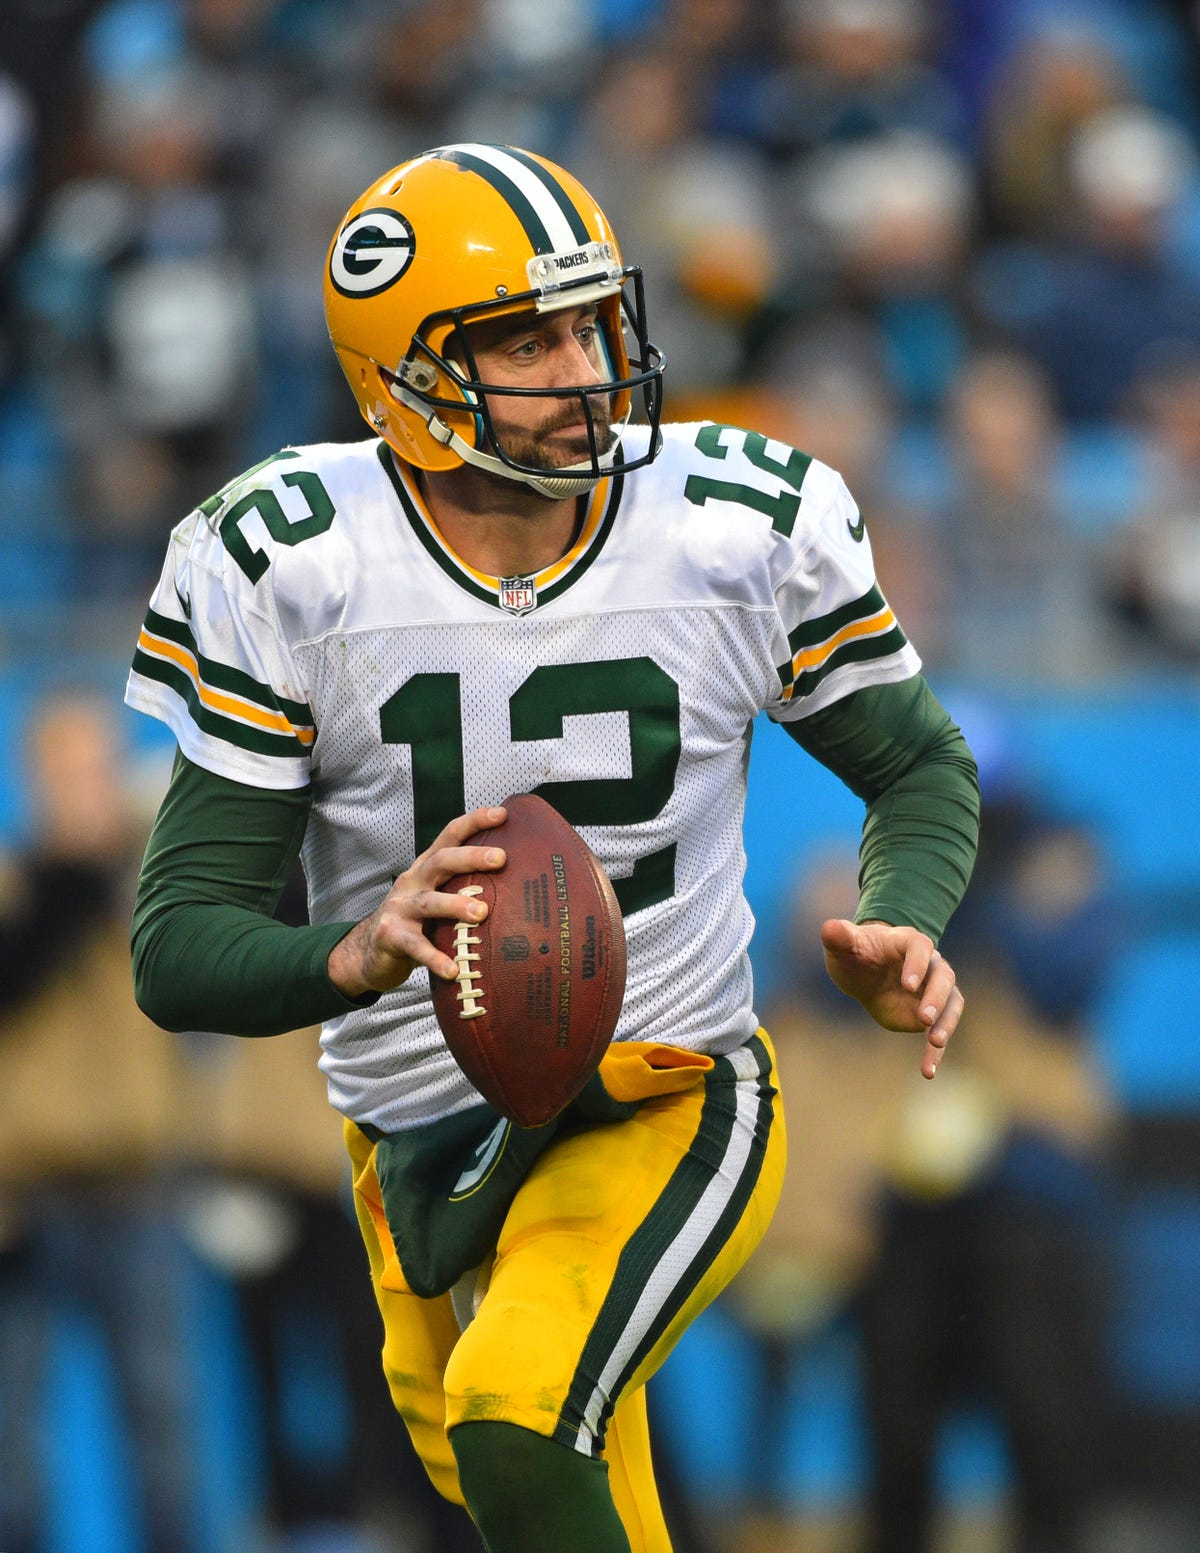 Aaron Rodgers not among highest-paid athletes, but Davante Adams is